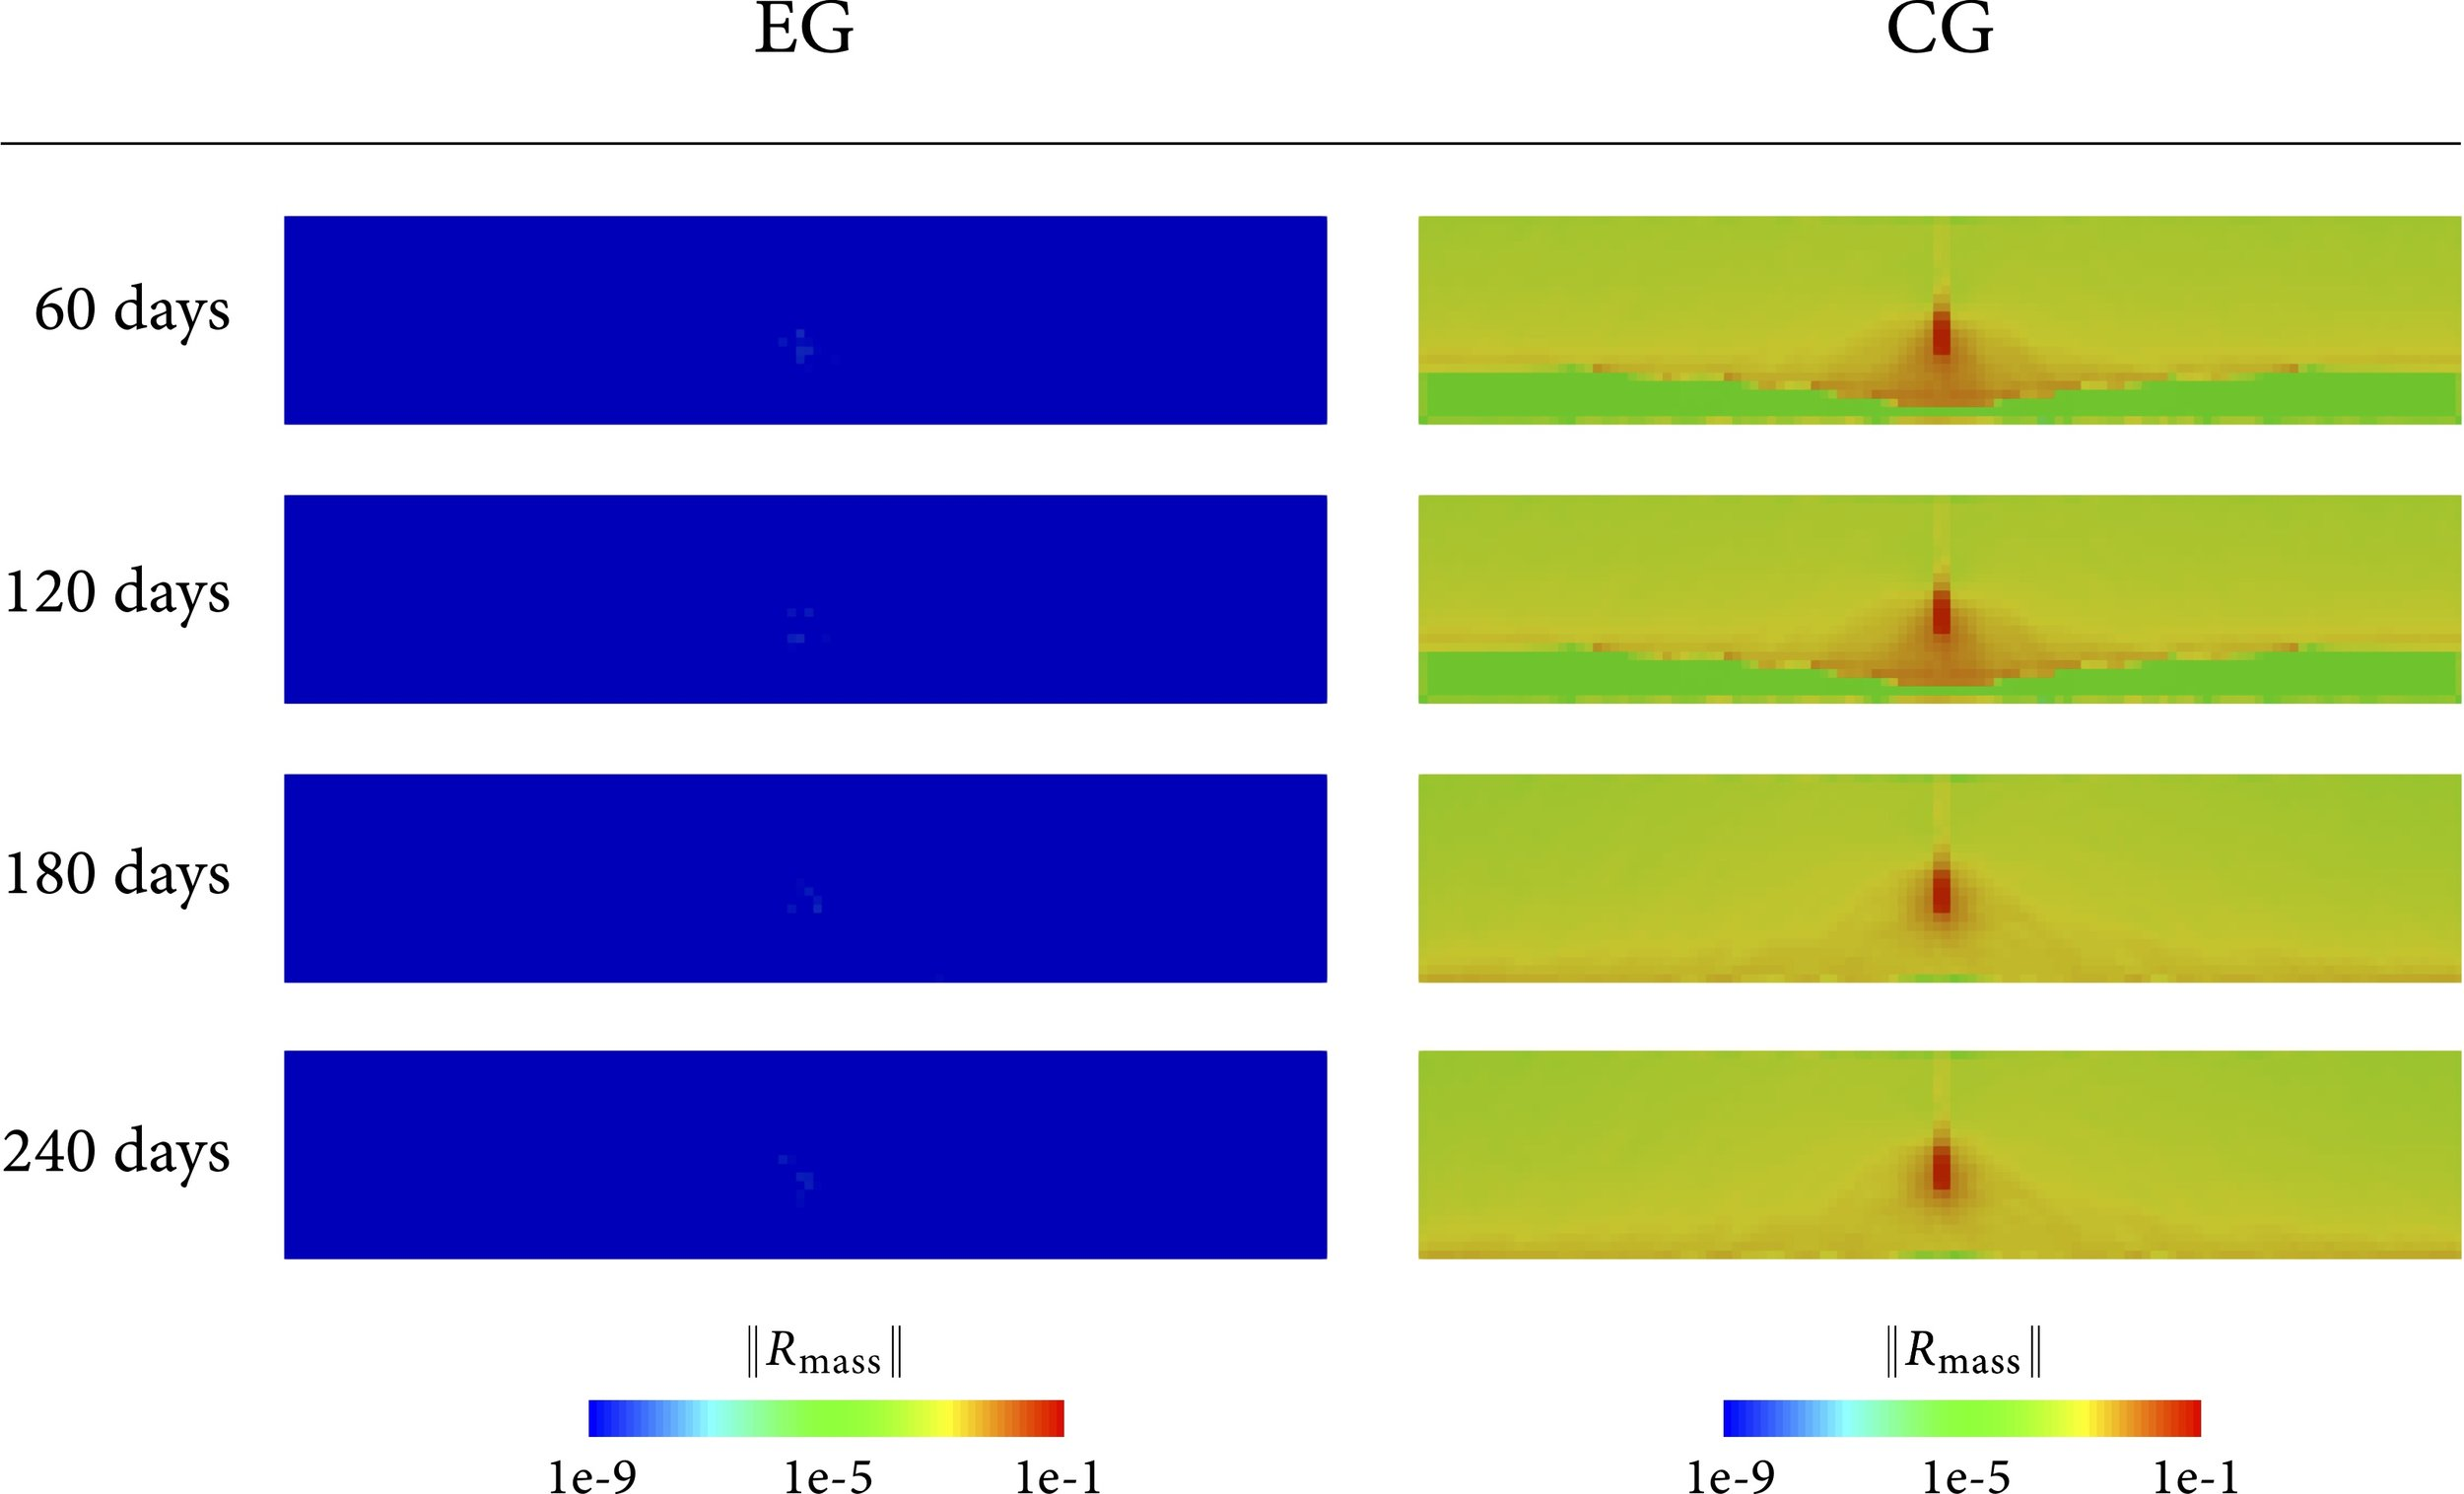 This paper proposes the first locally mass conservative finite element framework for large deformation poromechanical problems. The formulation builds on our previous work on enriched Galerkin (EG) methods. This figure shows local (element-wise) mass residuals in a synthetic land subsidence problem due to groundwater withdrawal. It can be seen that the local mass residuals are significant in the conventional continuous Galerkin (CG) solutions, but they become nearly zero in the EG solutions. This difference also affects the predicted subsidence results. The property of local mass conservation can become far more important once the flow is coupled with a transport phenomenon.